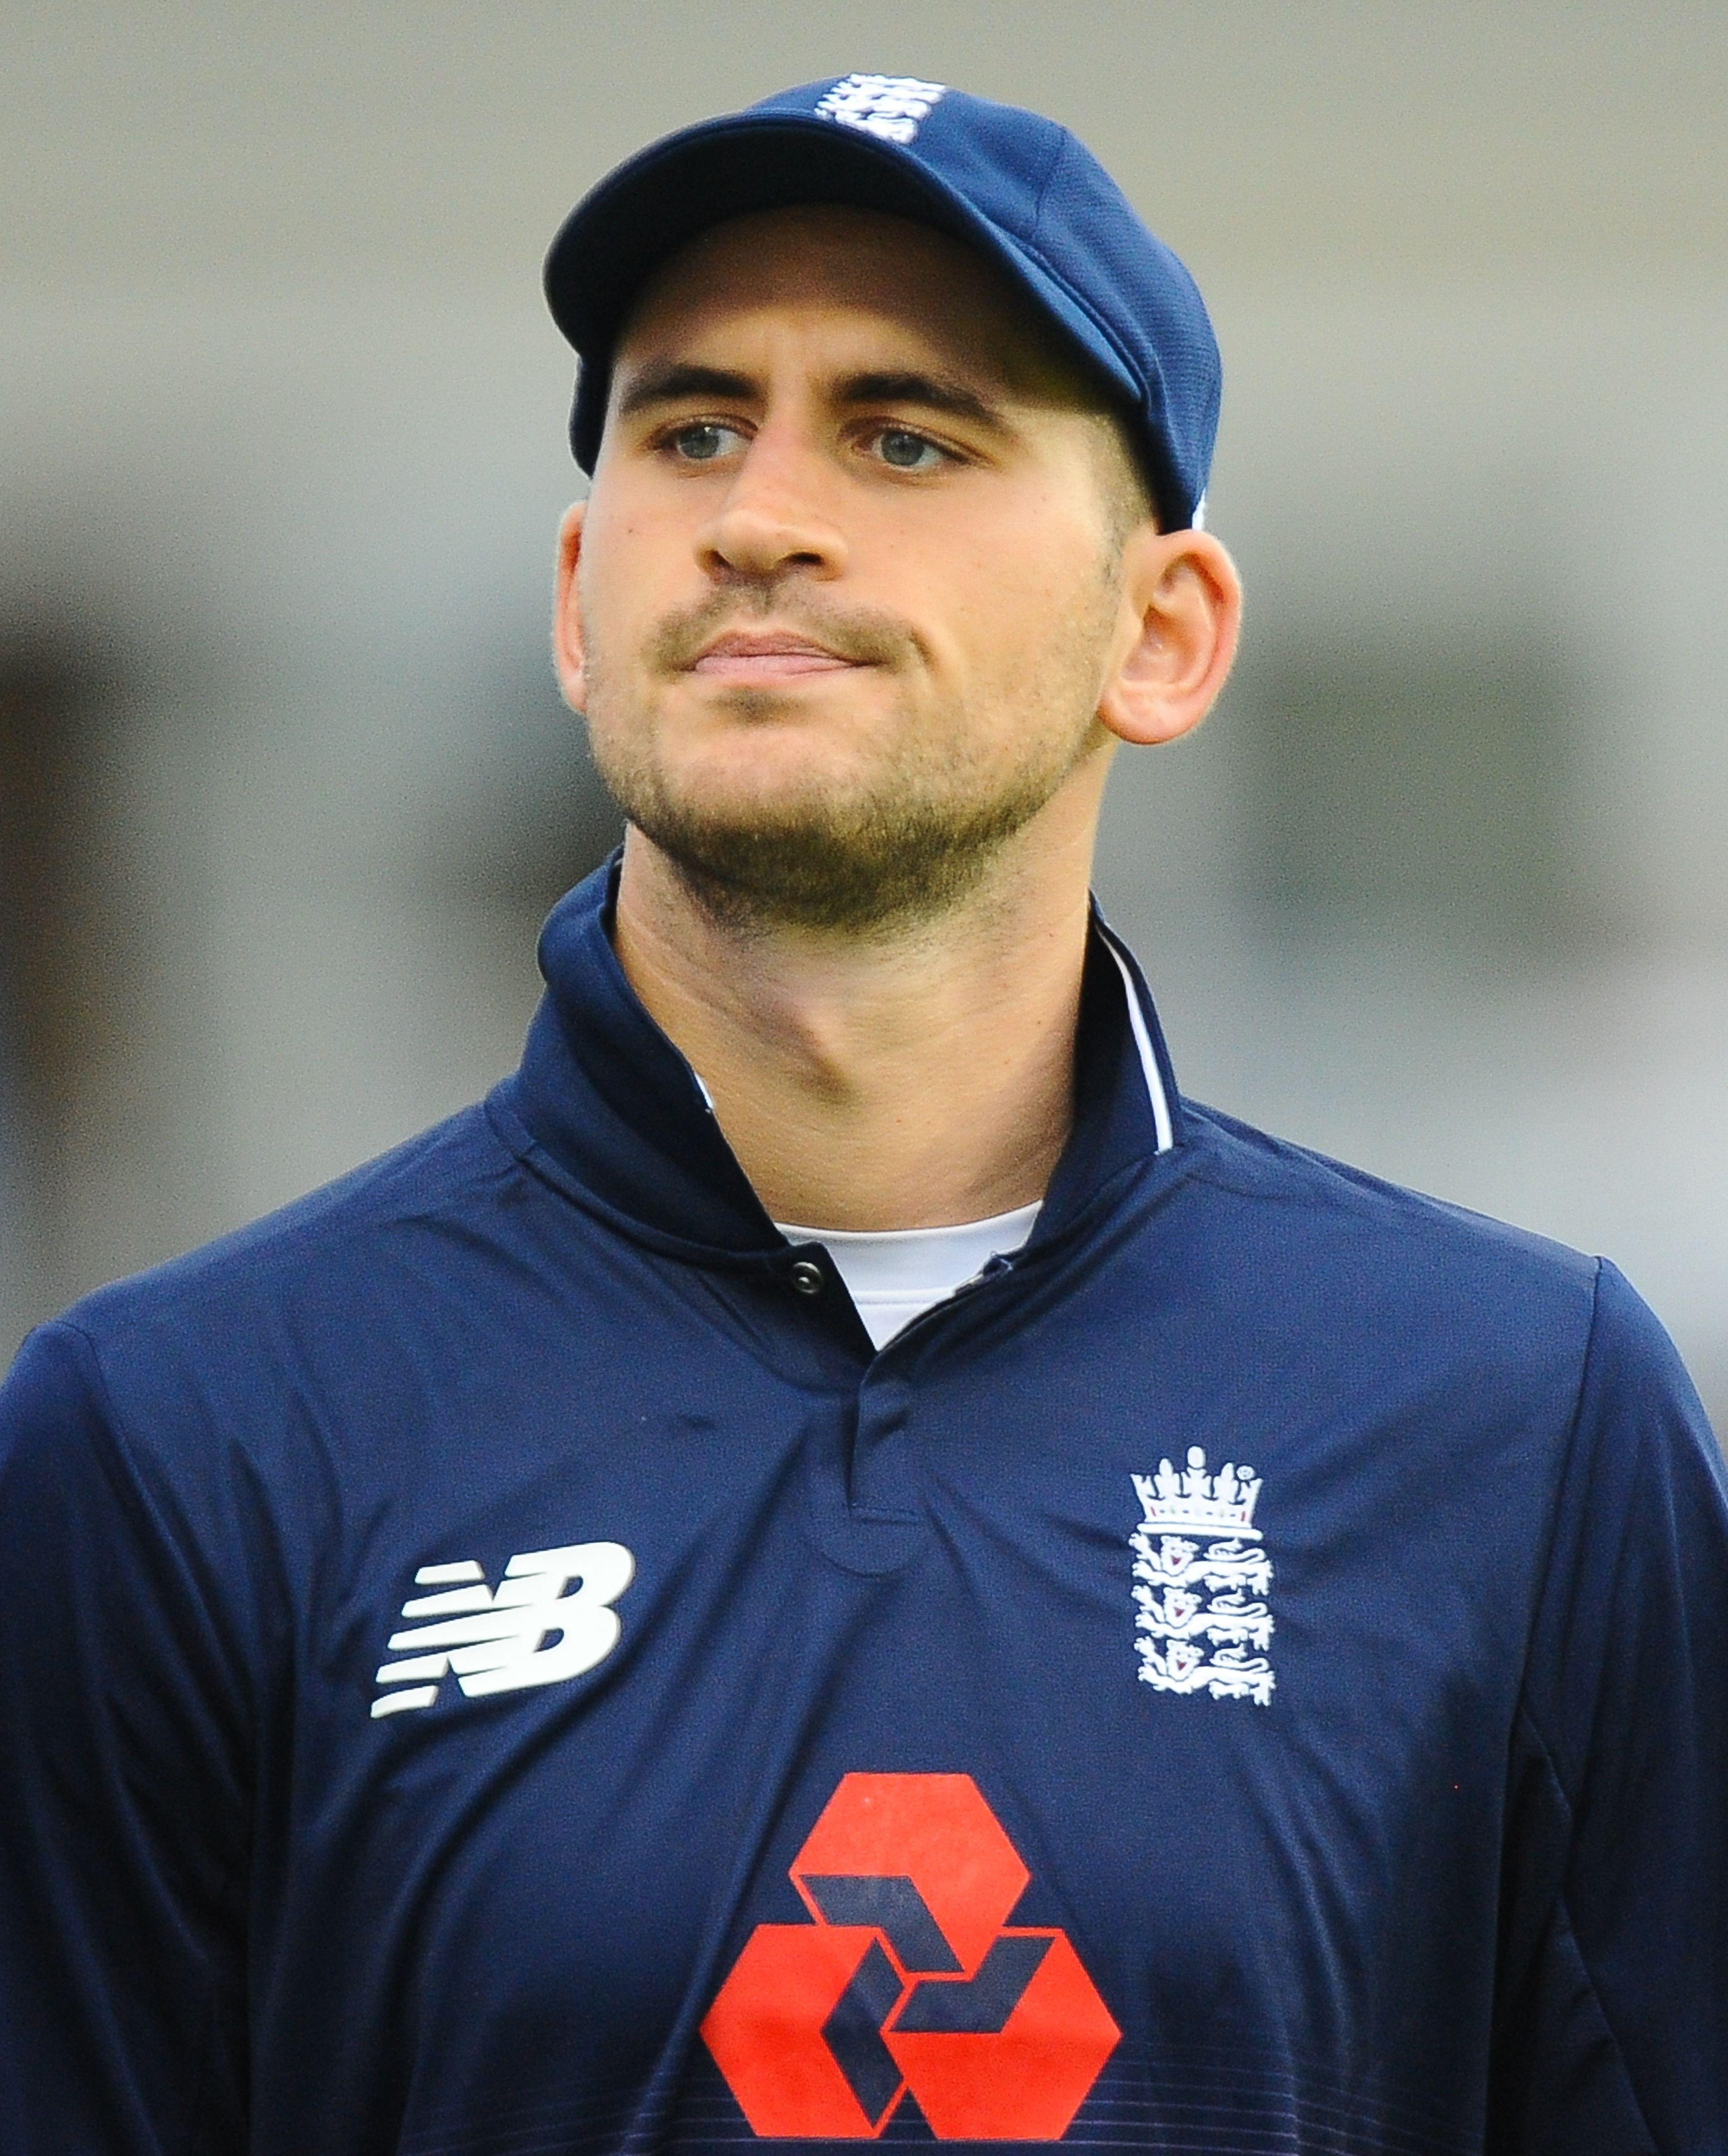 Alex Hales has also been hit by disrepute charges by the ECB along with Ben Stokes